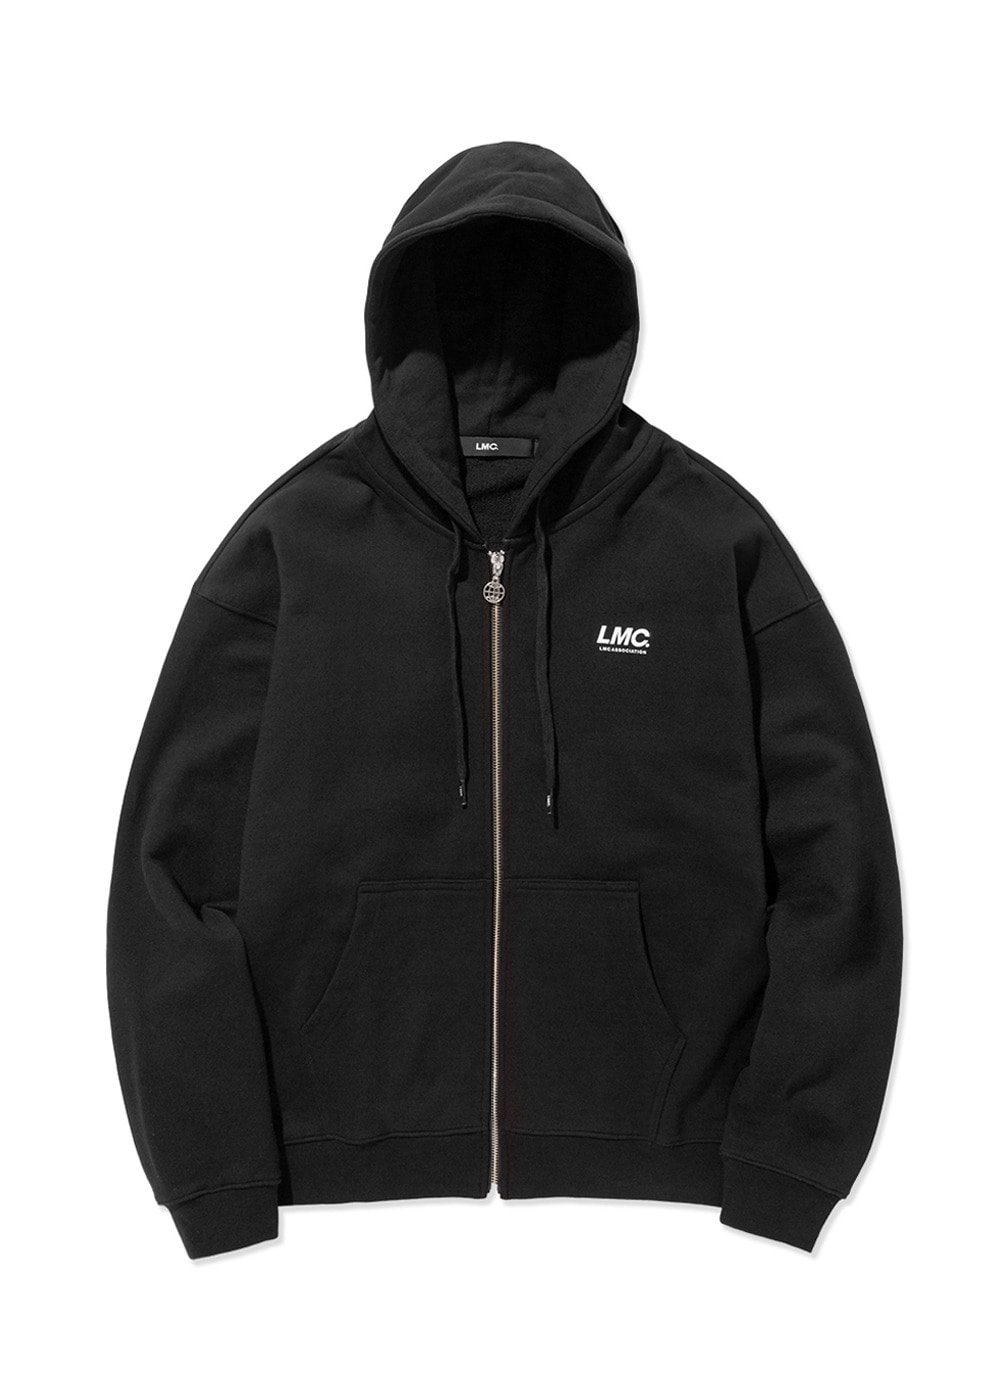 LMC ITALIC ZIP-UP HOODIE black